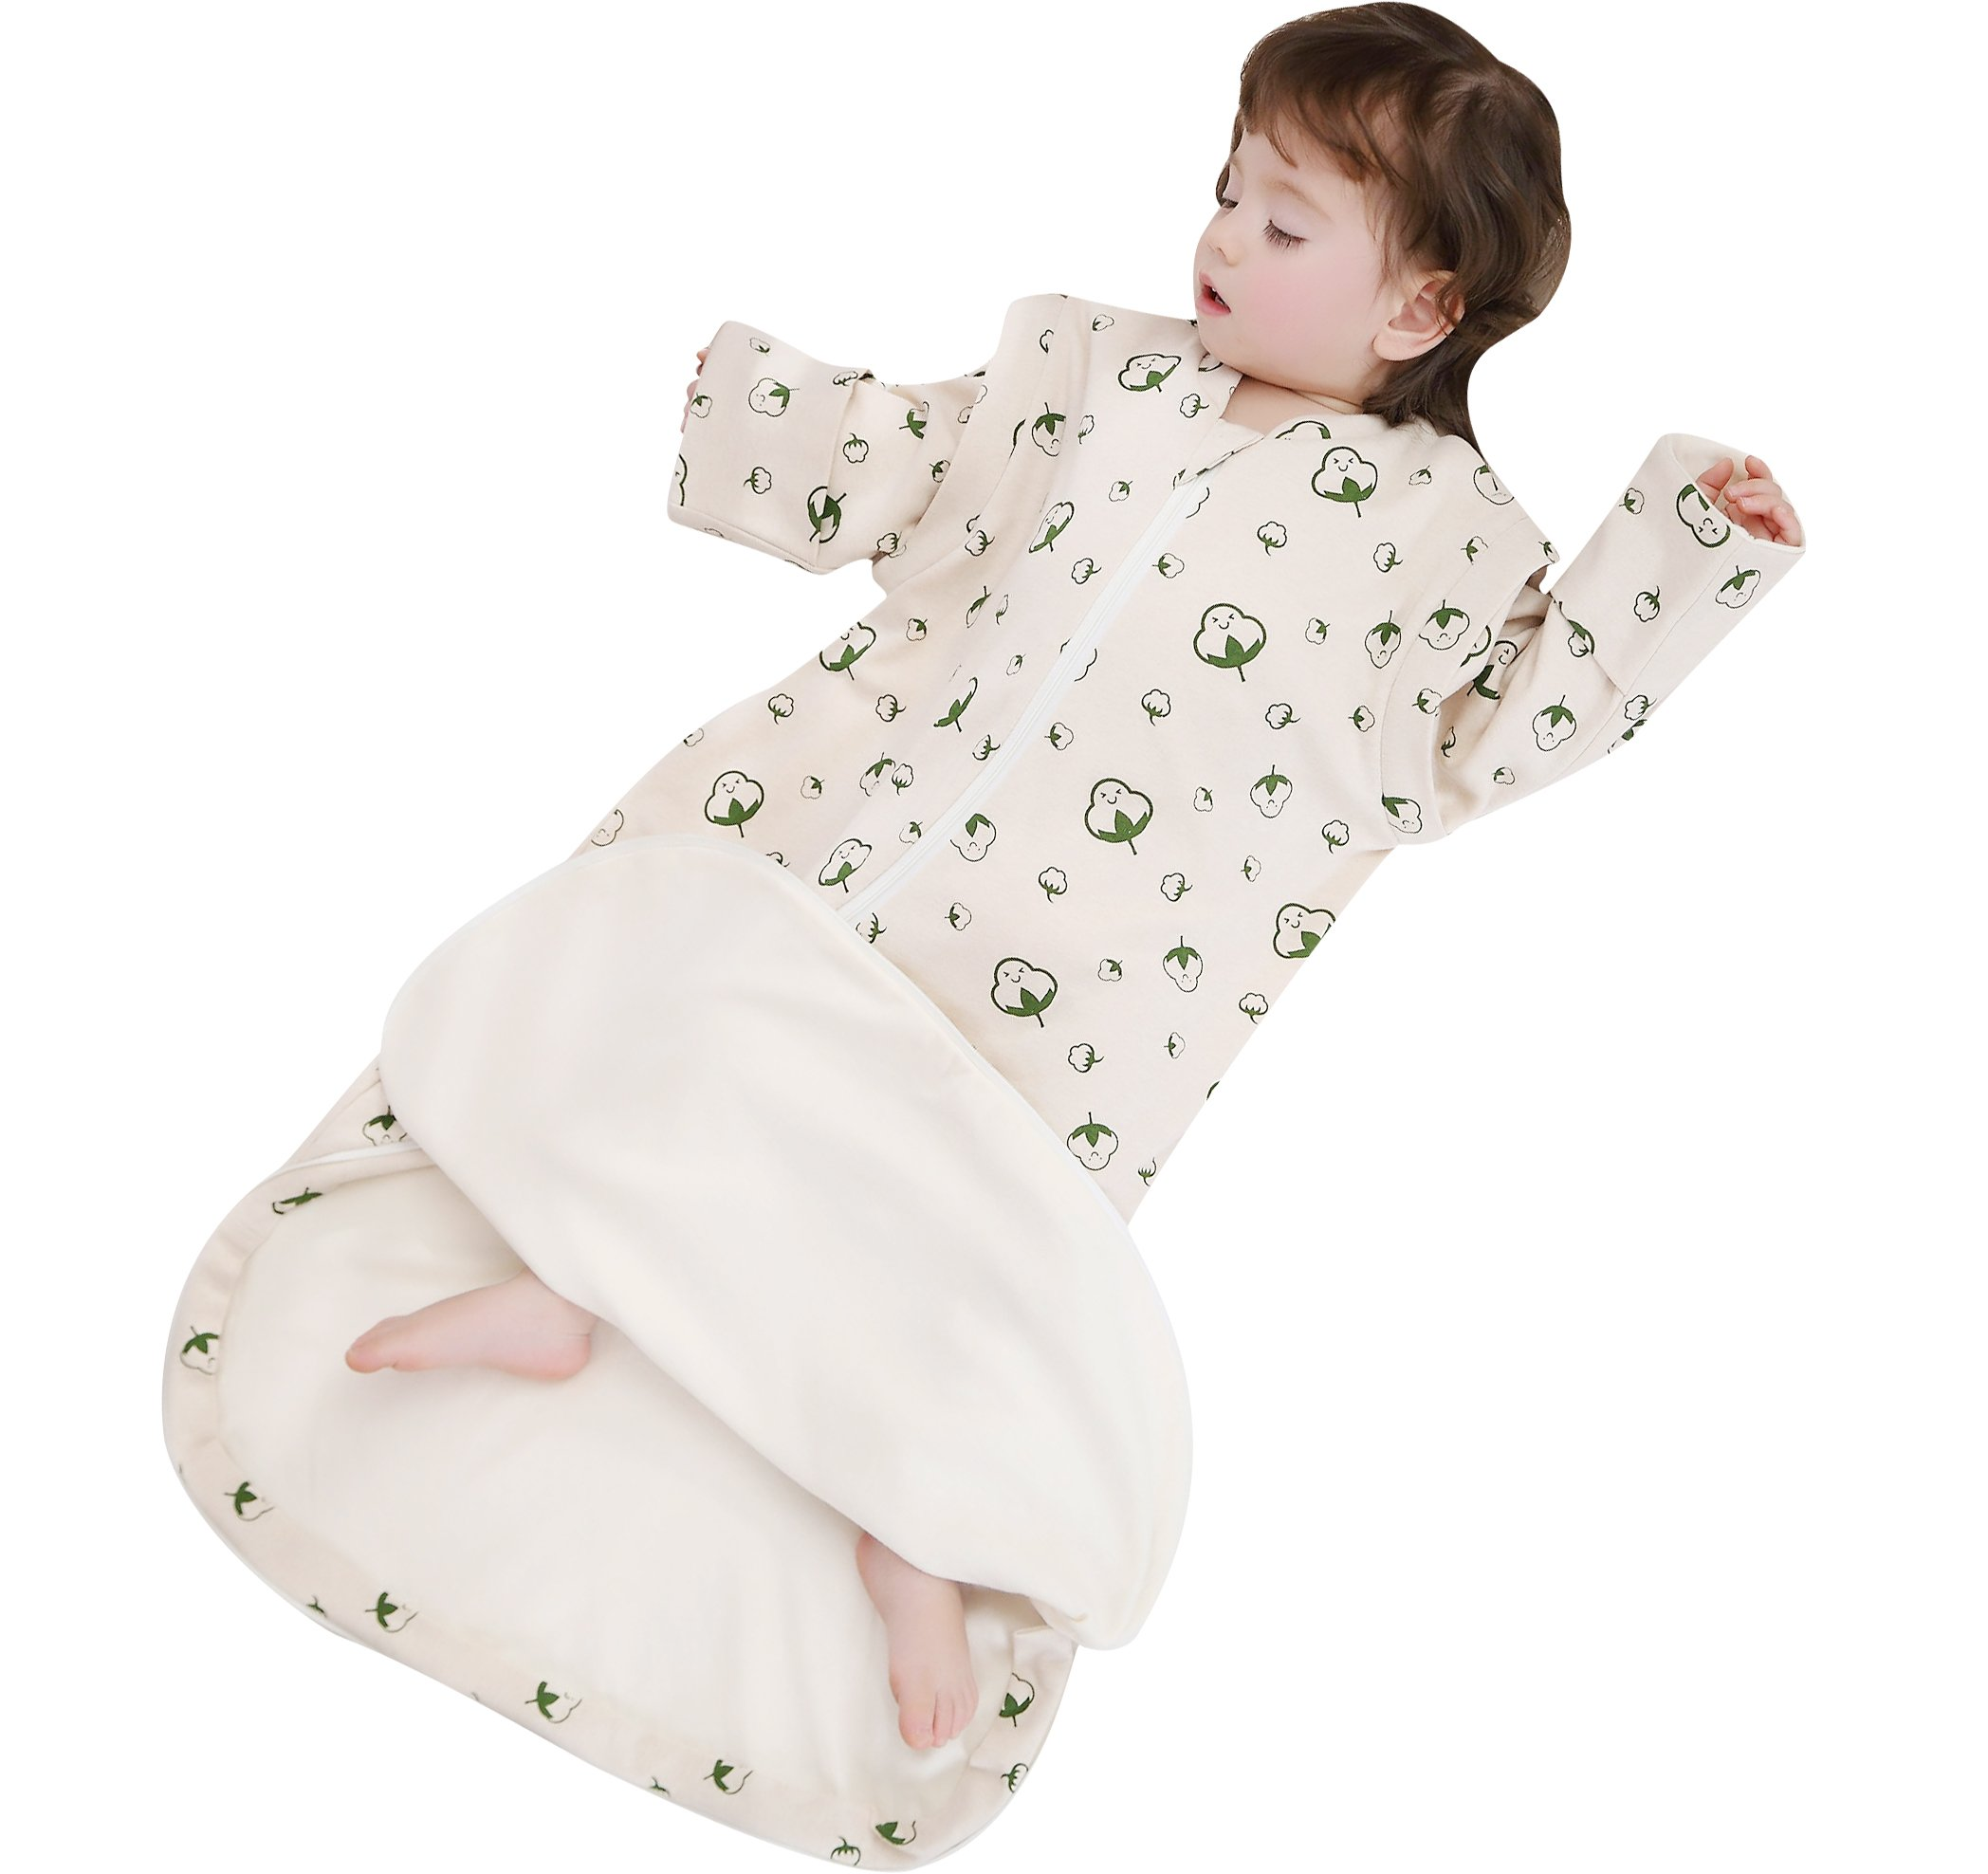 luyusbaby Sleeping Bag Organic Cotton Thickened Removable Sleeves Baby Wearable Blanket, for Spring Fall by luyusbaby